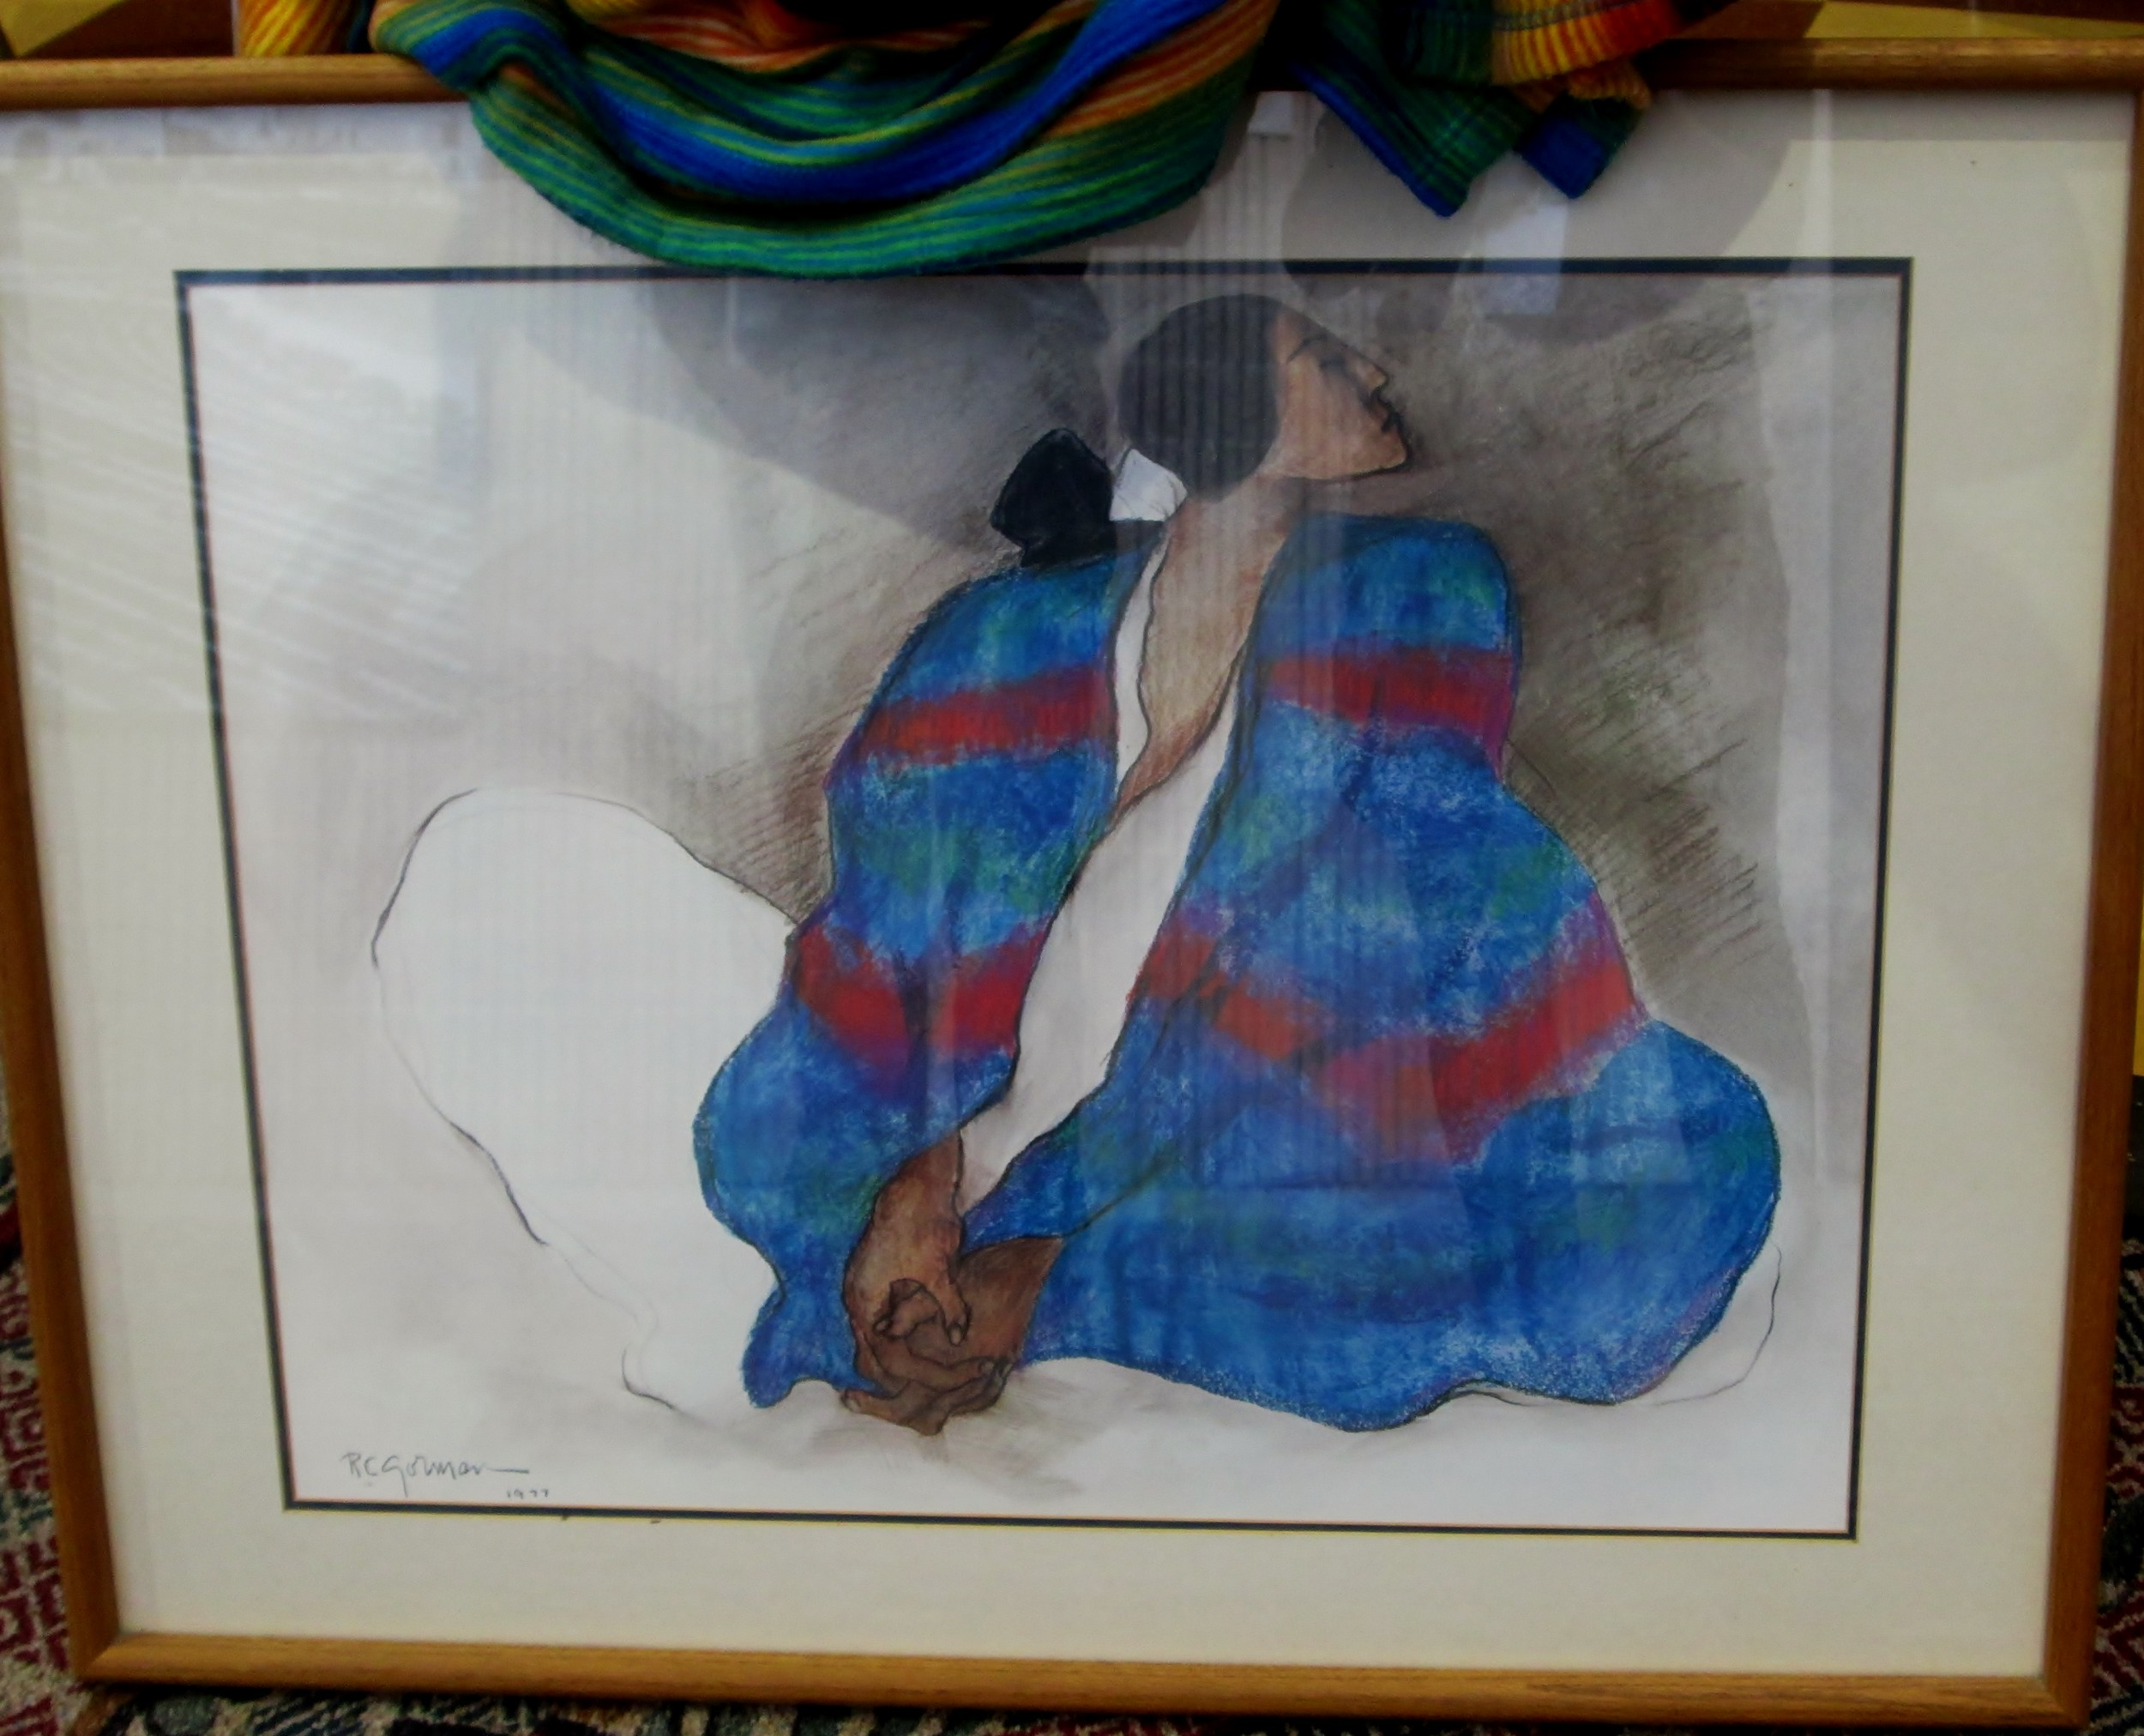 RC Gorman Native American painting from 1977